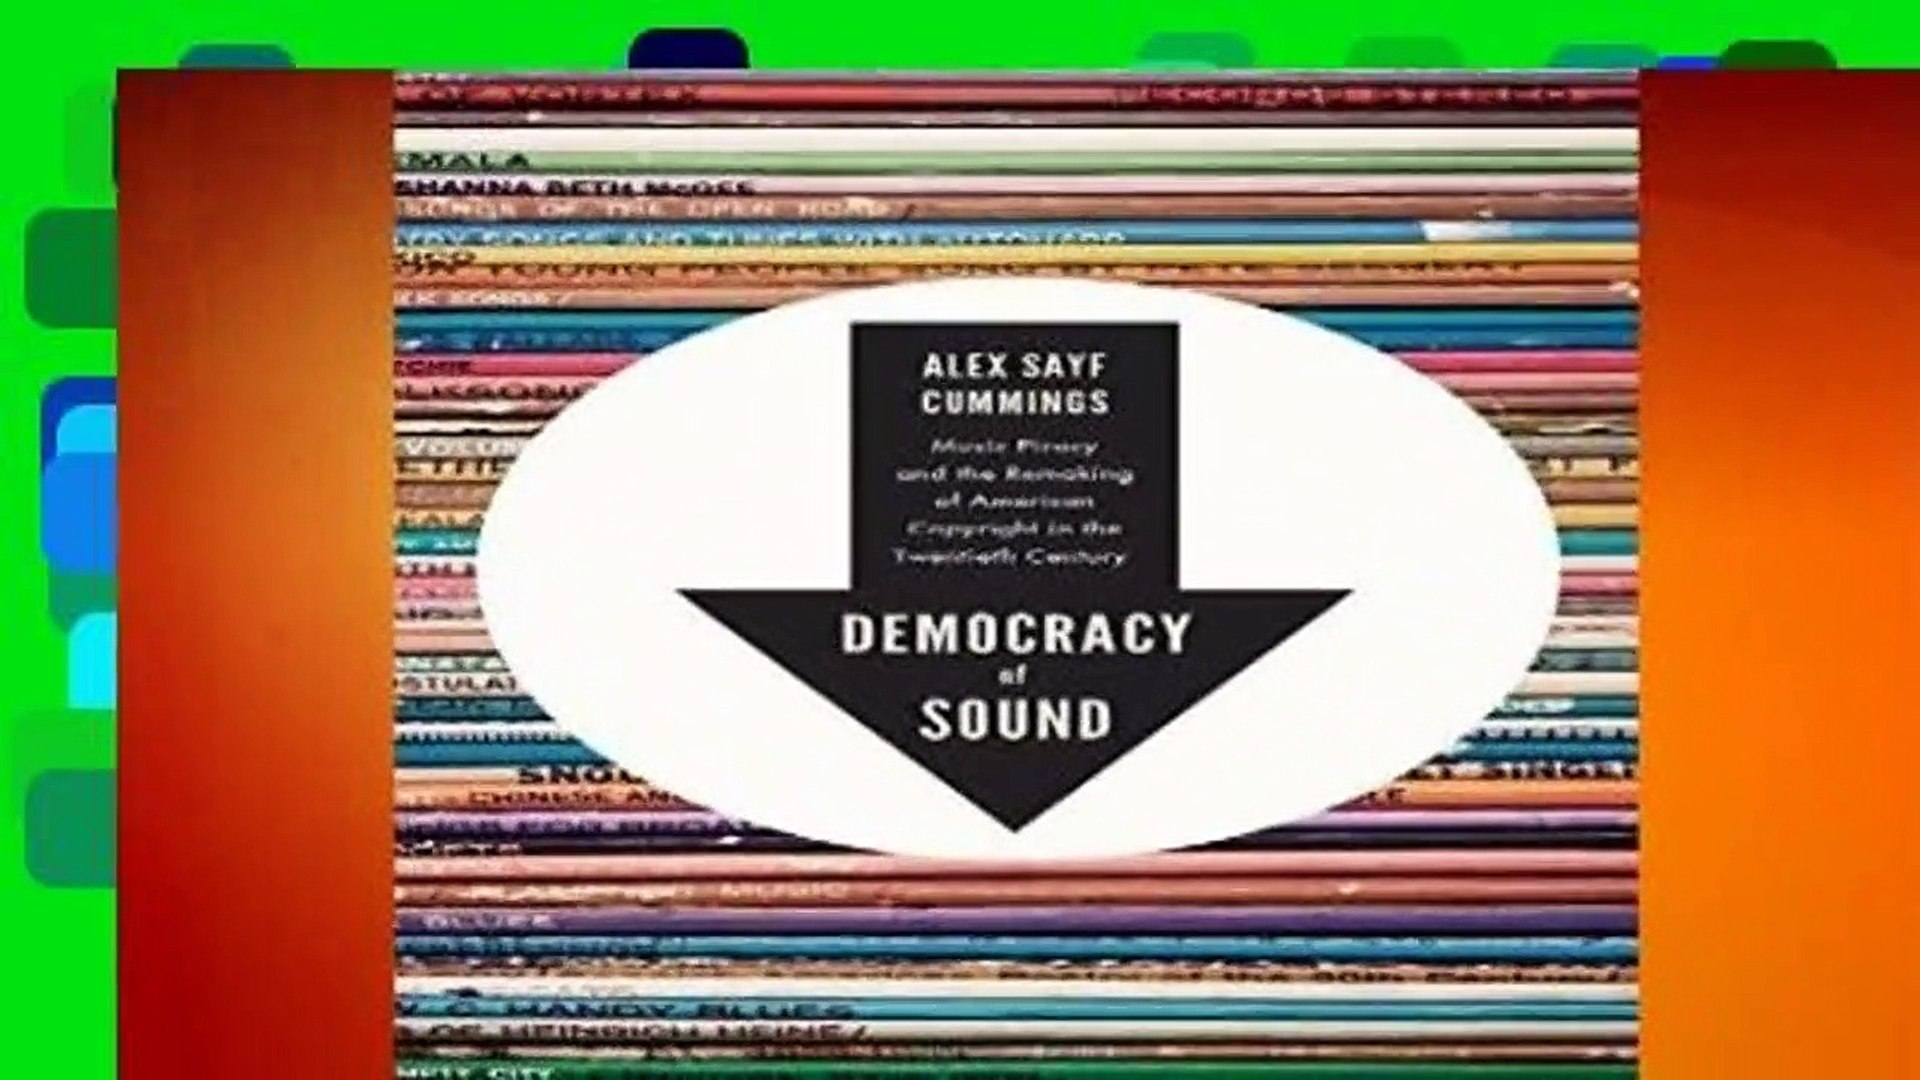 Full E-book  Democracy of Sound: Music Piracy and the Remaking of American Copyright in the